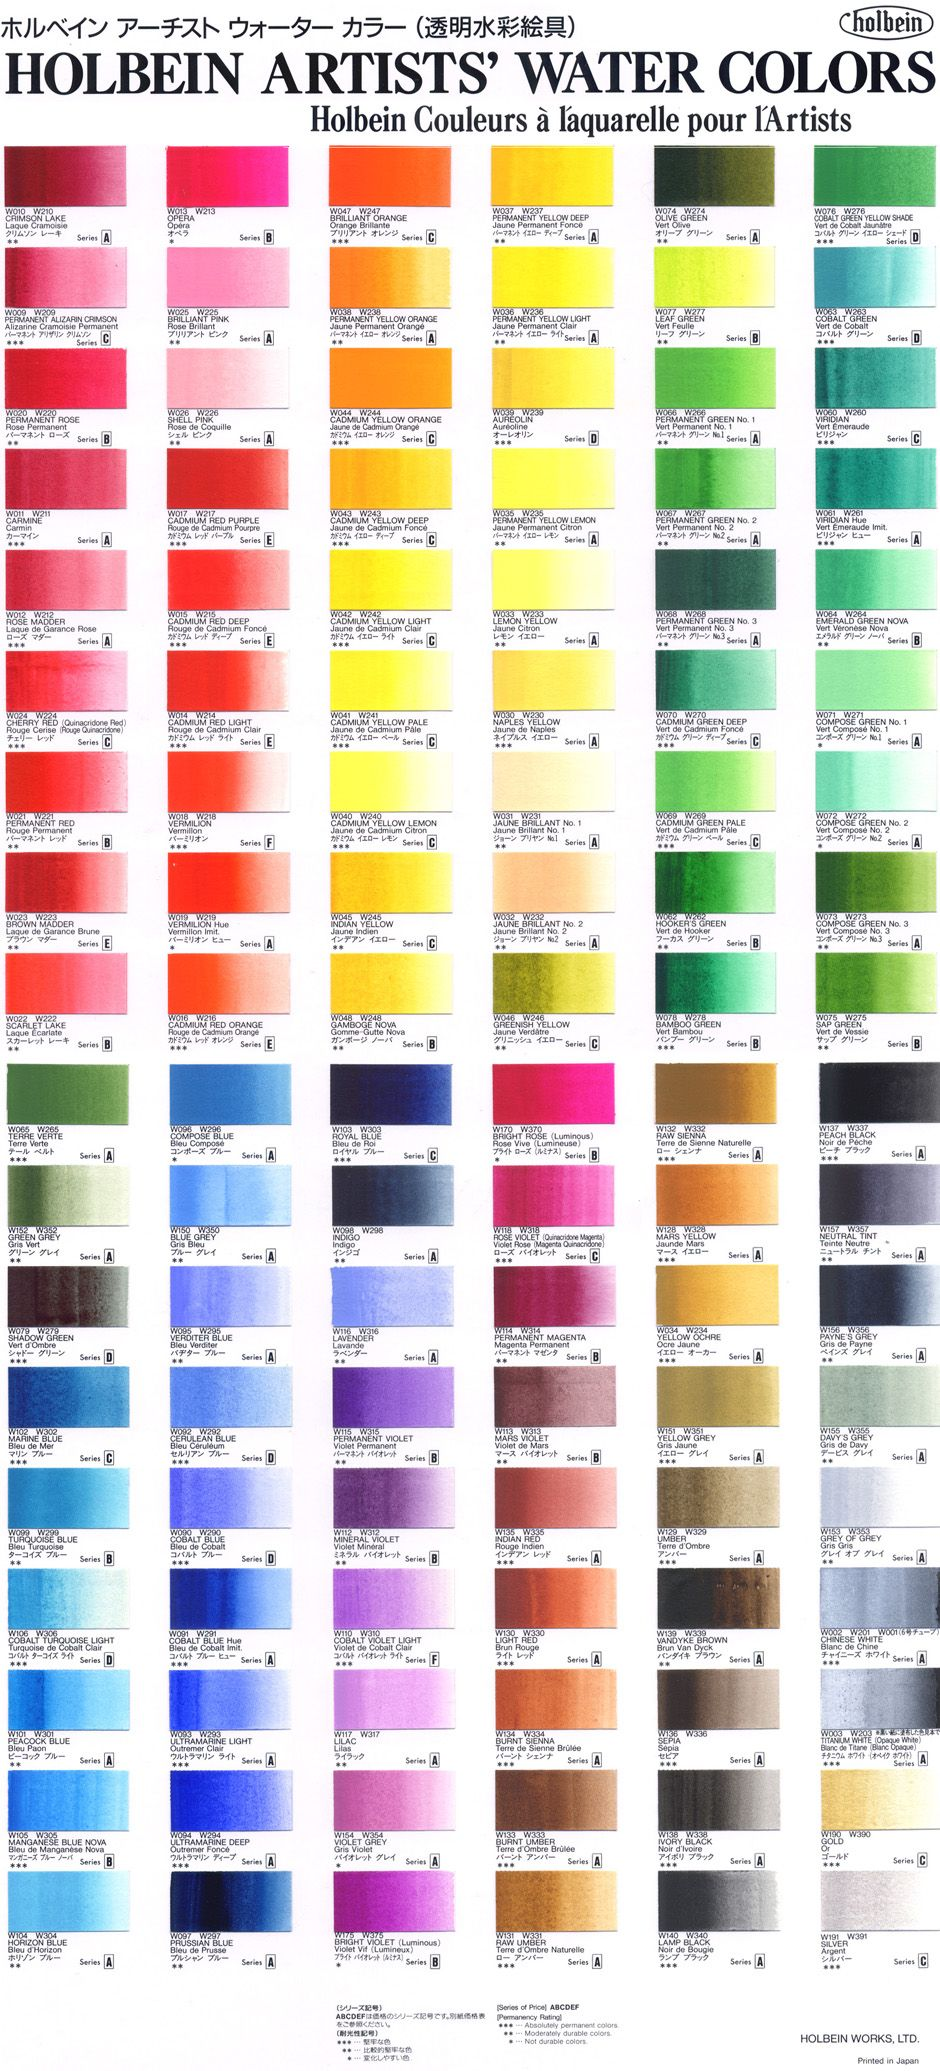 Holbein Color Chart Nuancier Couleur Comment Peindre Aquarelle